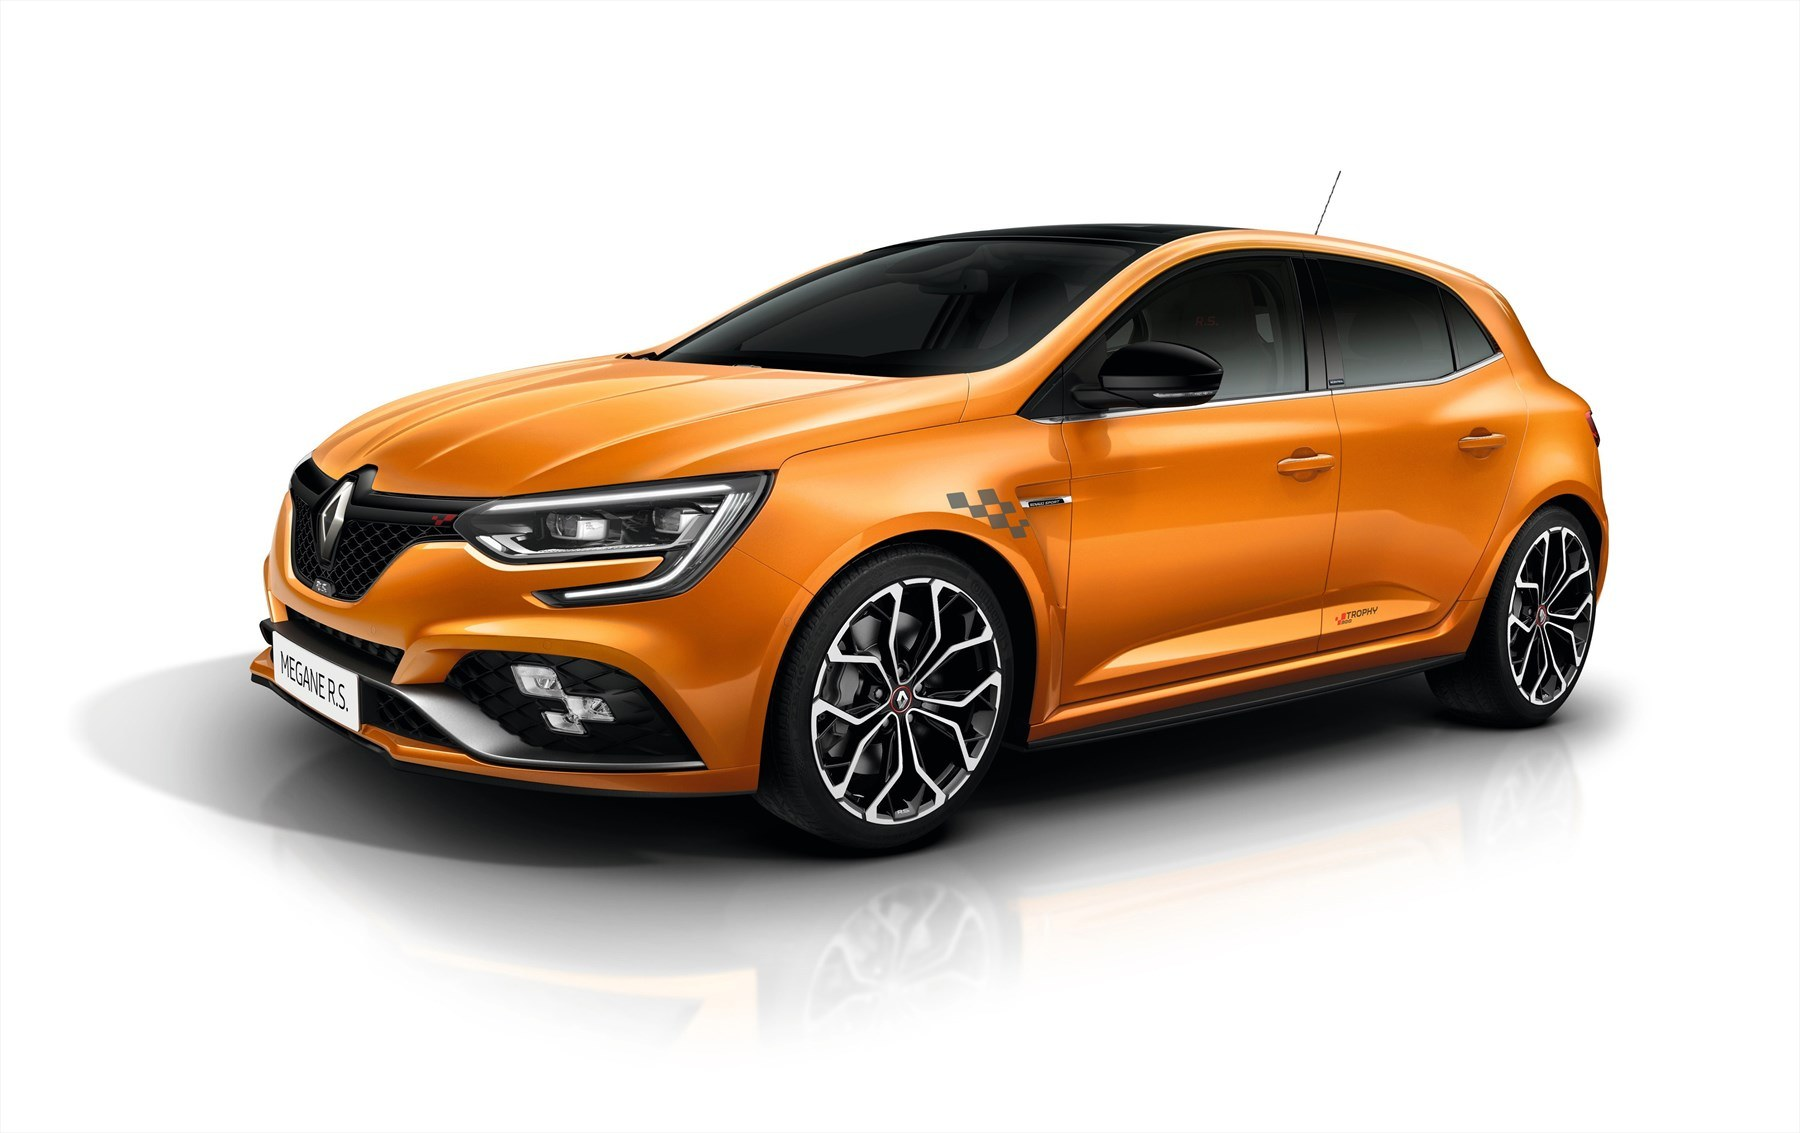 Renault meganers trophy orange qfront 1800x1800